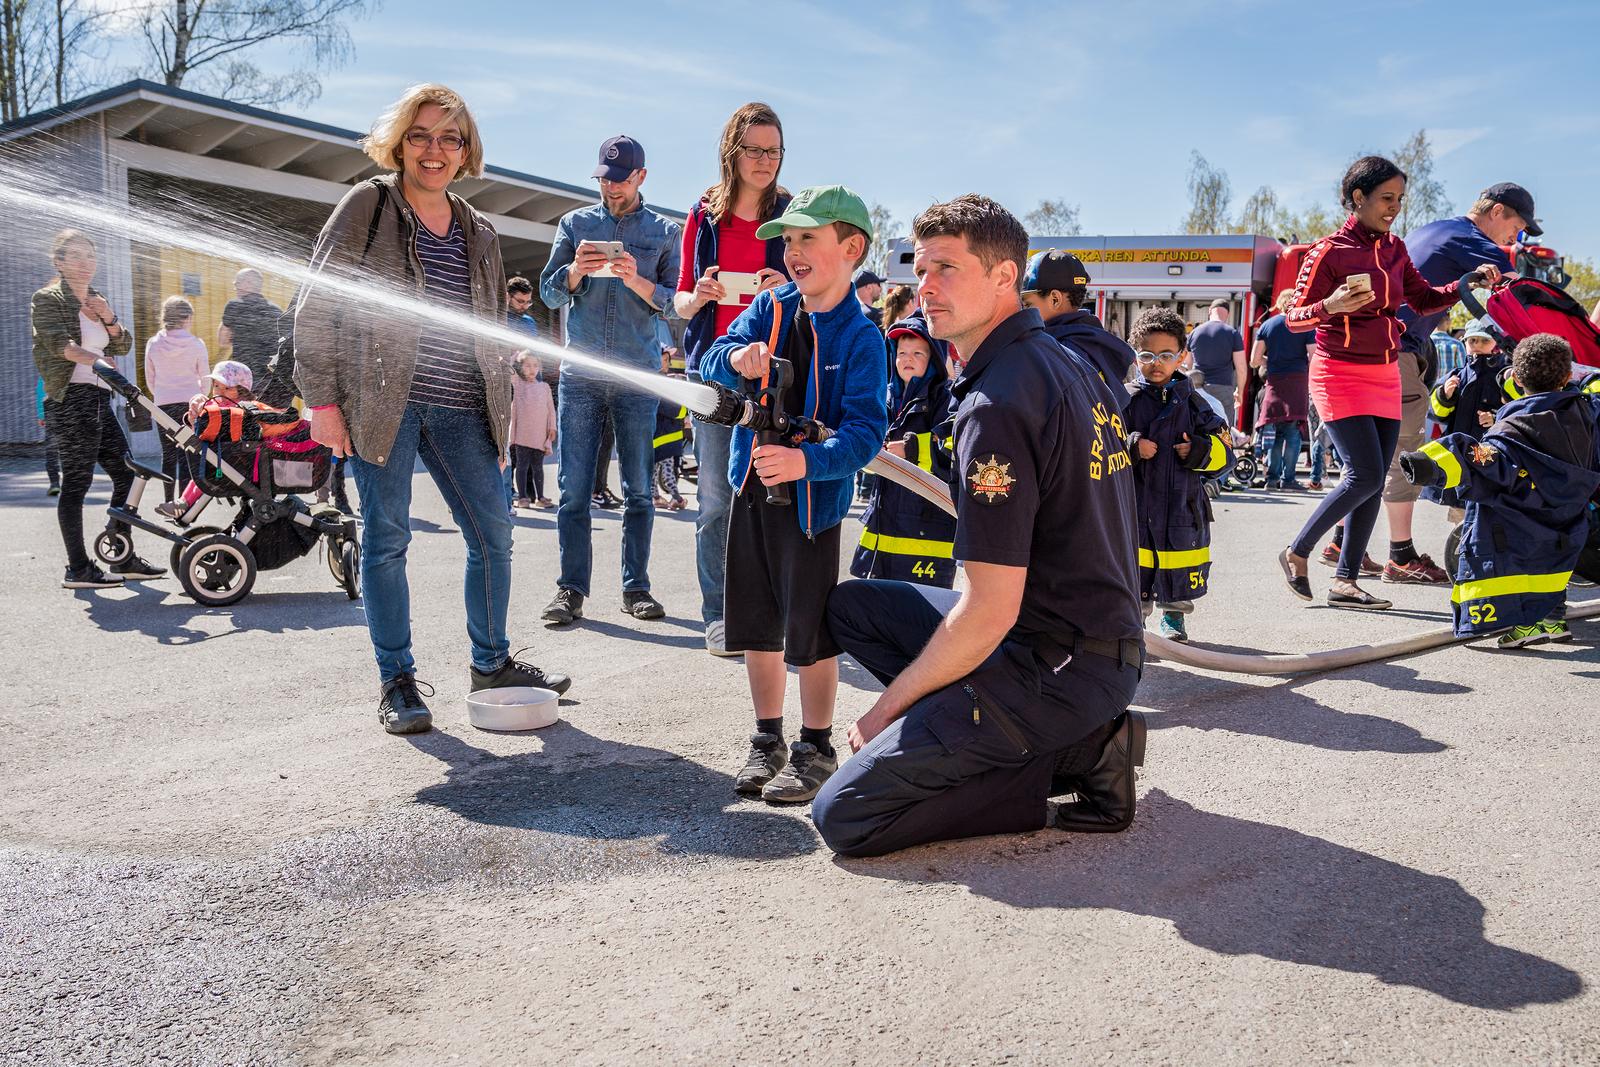 Parents should take the time to teach children the specifics of fire safety and schools should be educating students by employing fire safety courses in conjunction with local fire stations in the classroom. ©BigStockPhoto